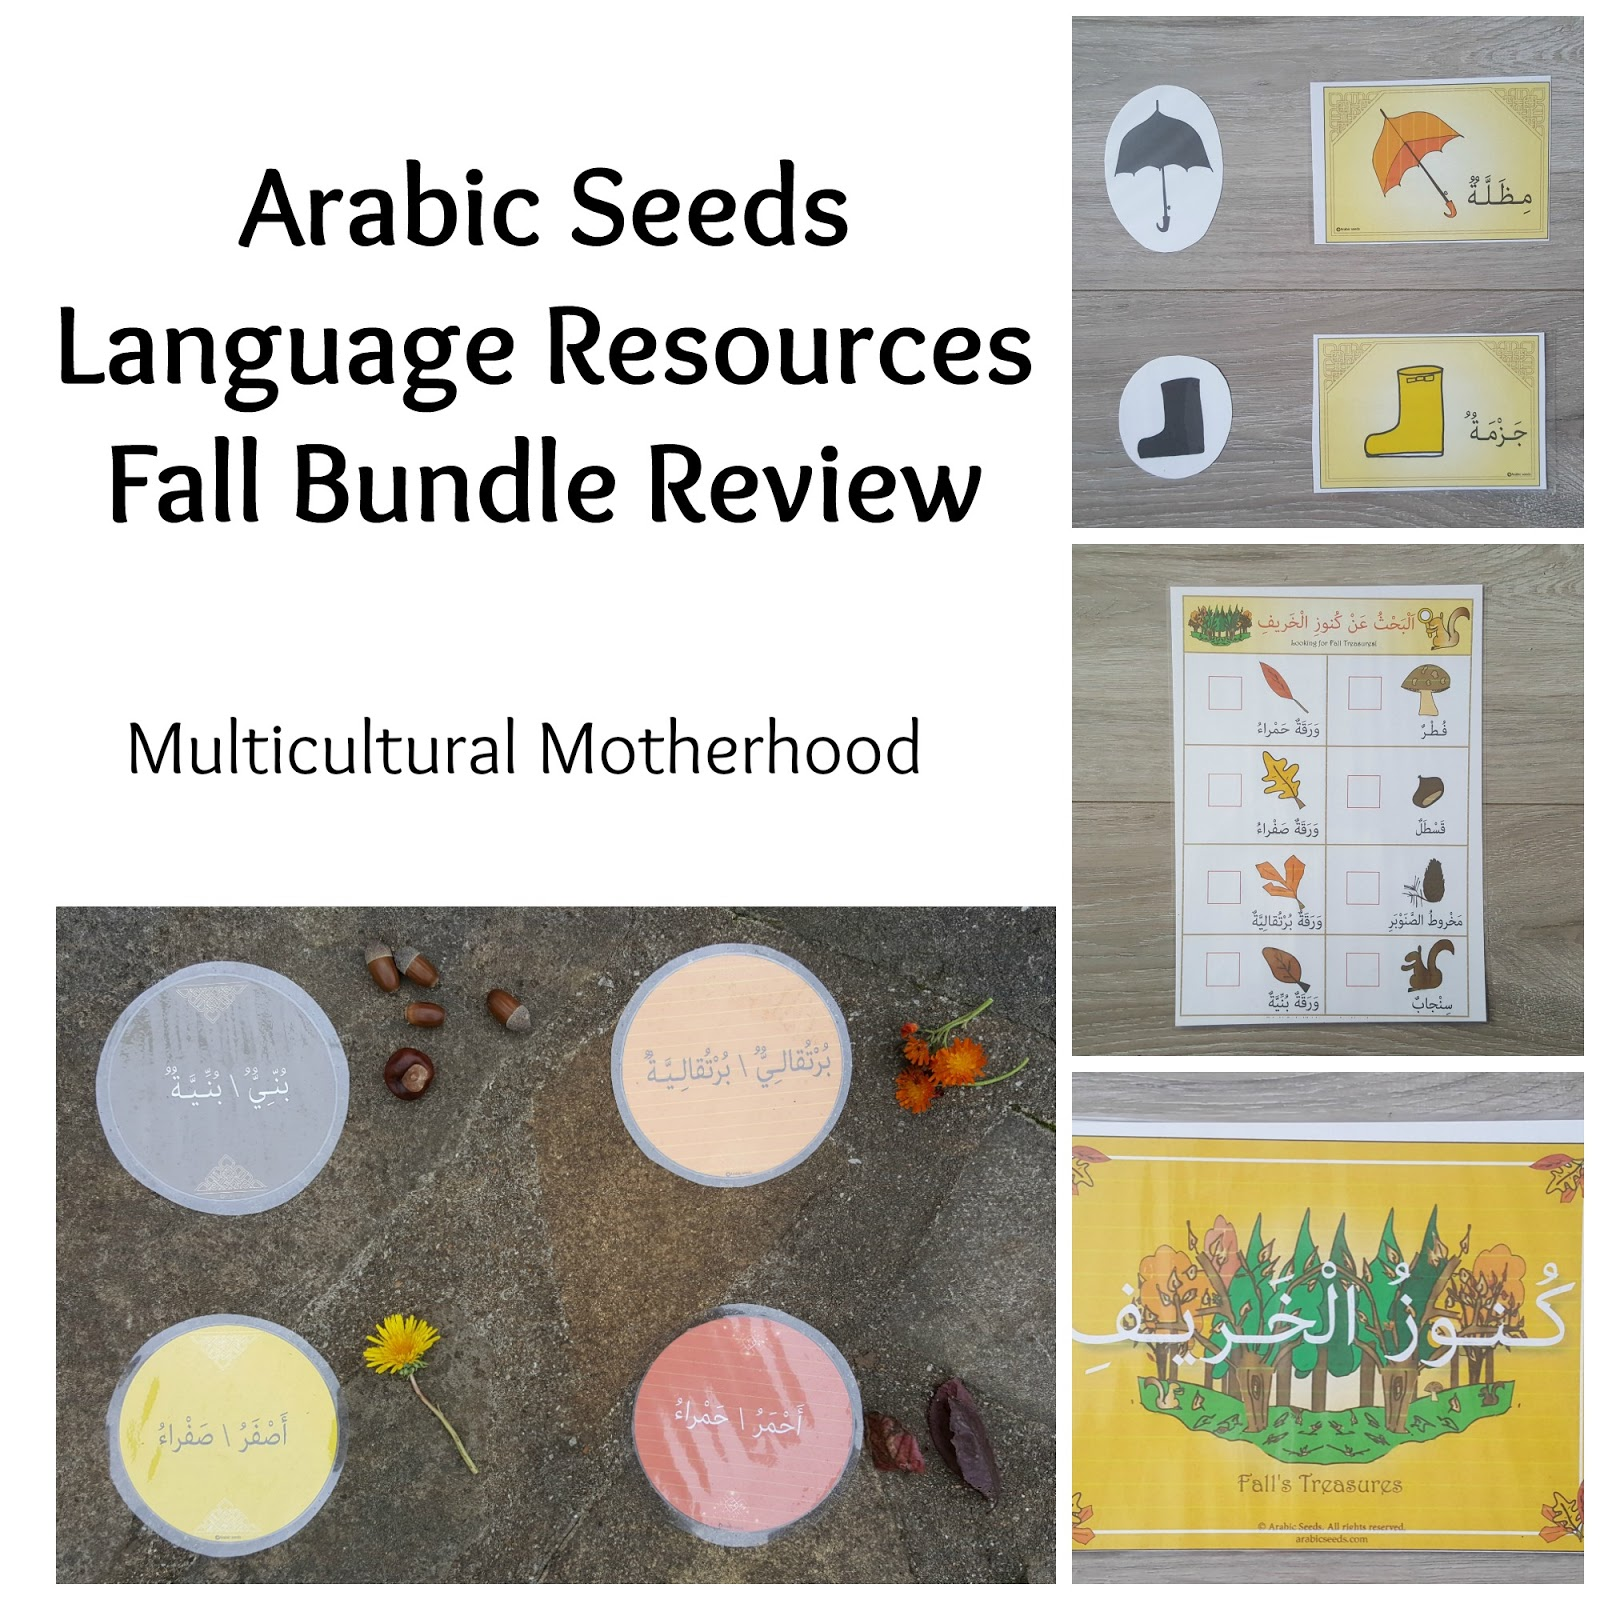 Arabic Seeds Language Resources Fall Bundle Review